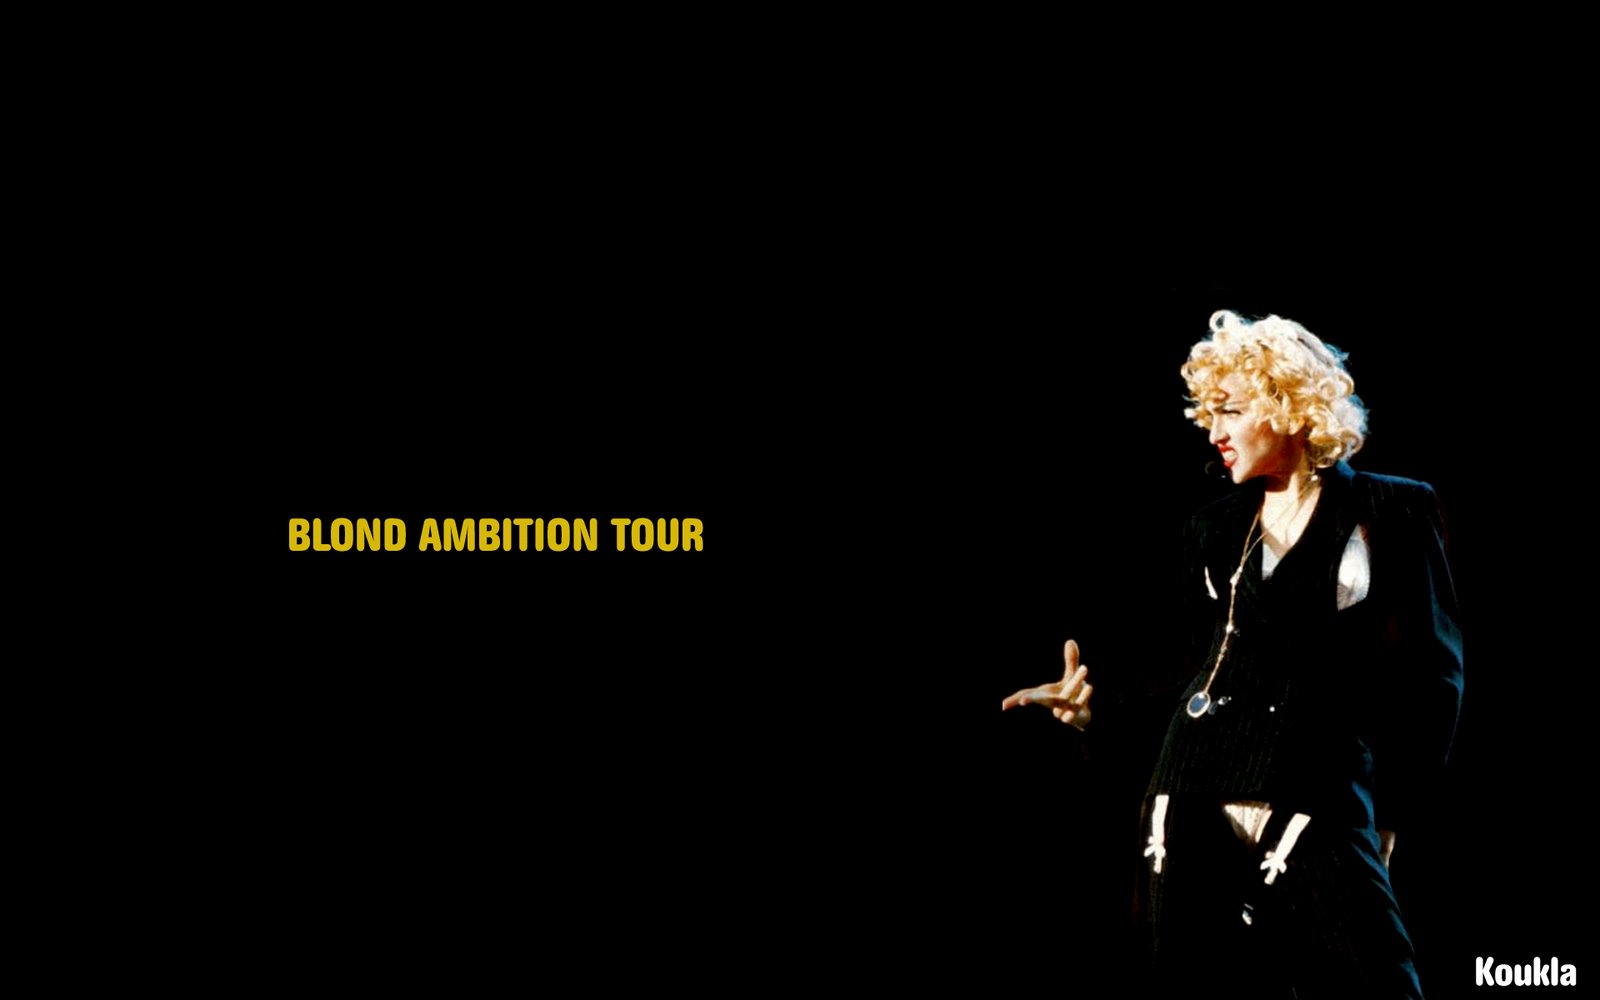 Blond Ambition Tour Wallpaper MADONNA FANMADE ARTWORKS 1600x1000